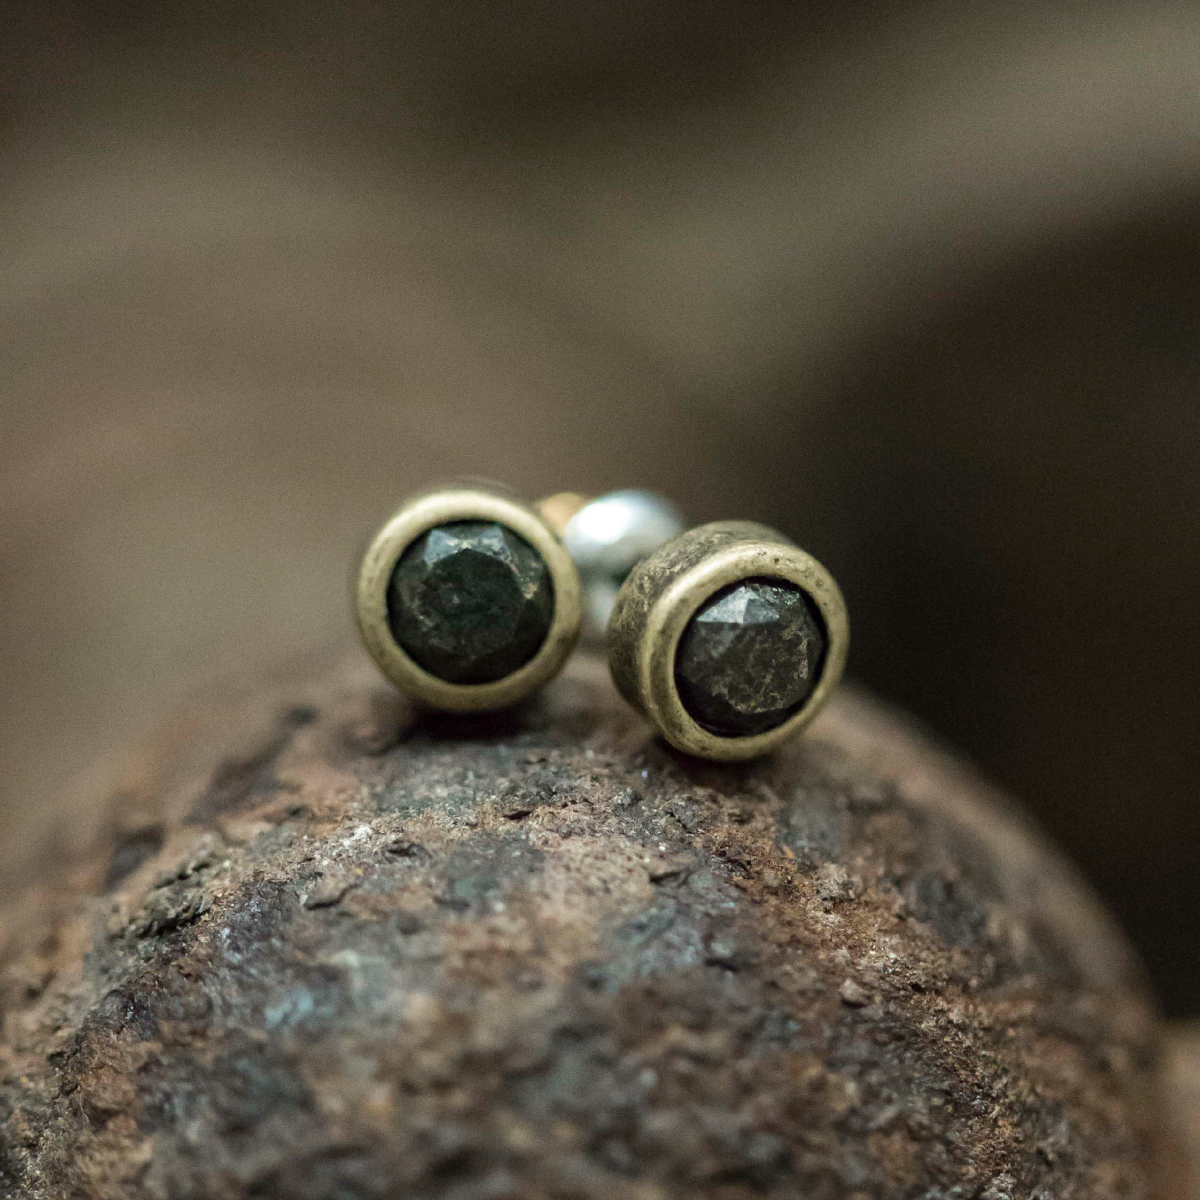 Tutti & Co Gold Pyrite Stud Earrings available at Birdhouse Jewellery